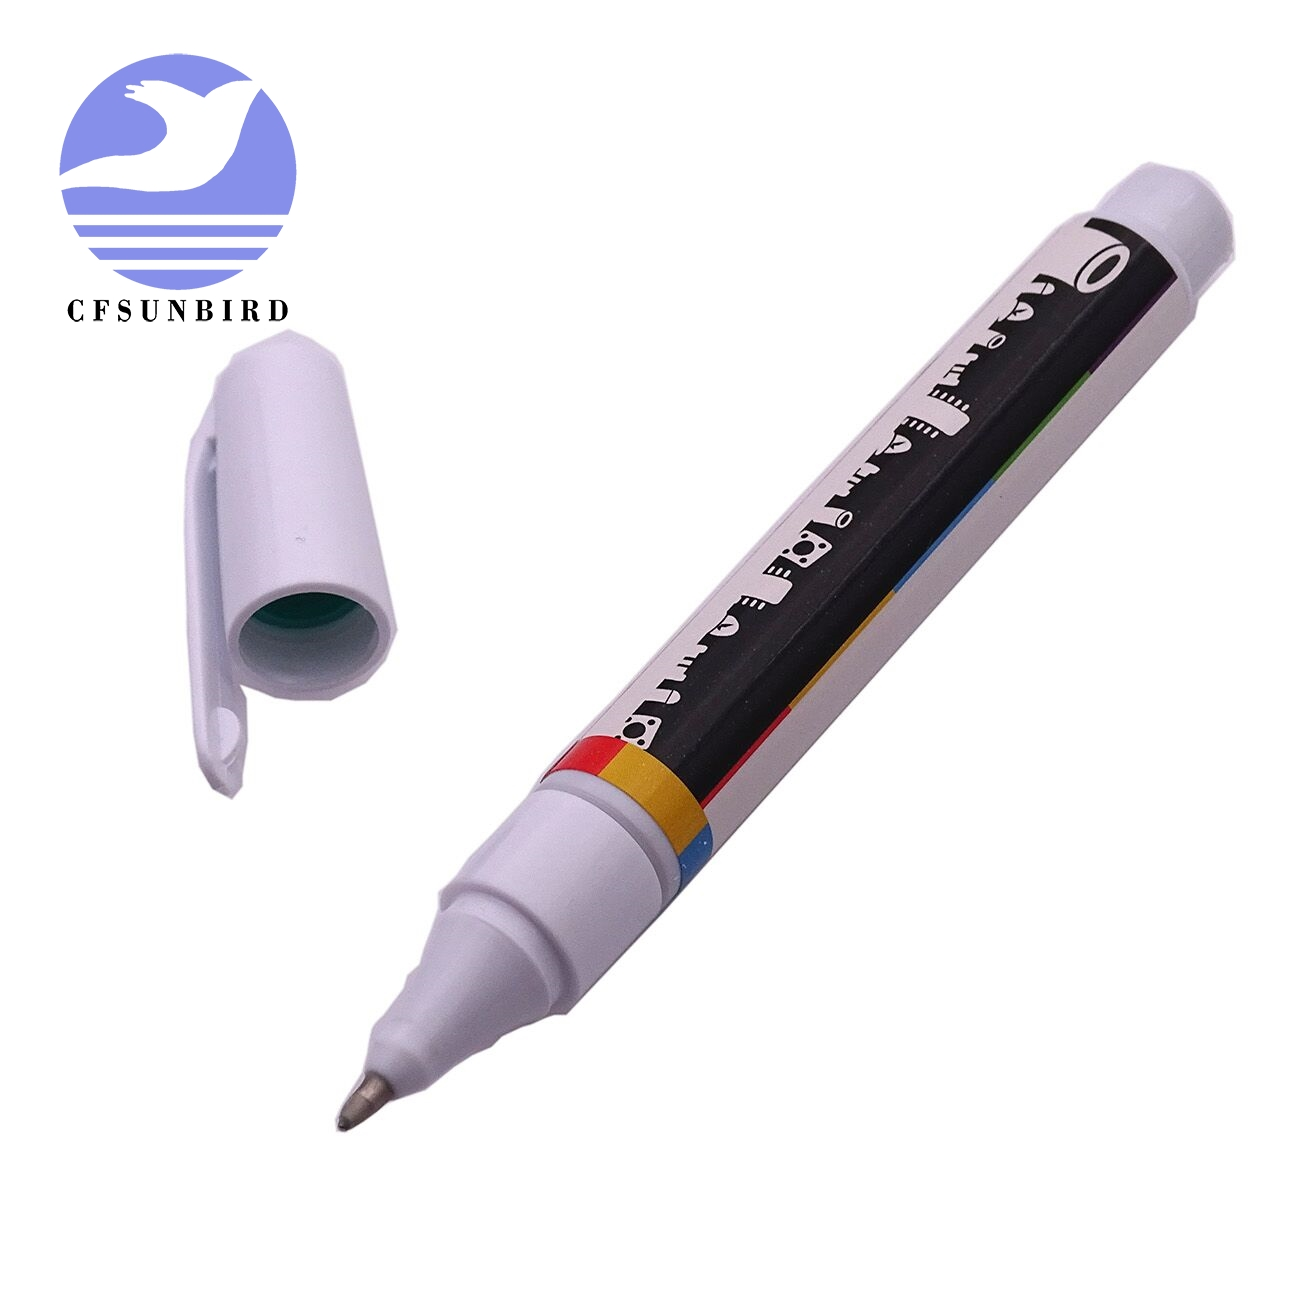 CFsunbird Conductive Ink Pen Electronic Circuit Draw Instantly Magical Pen Circuit DIY Maker Student Kids Education Black/Gold(China)